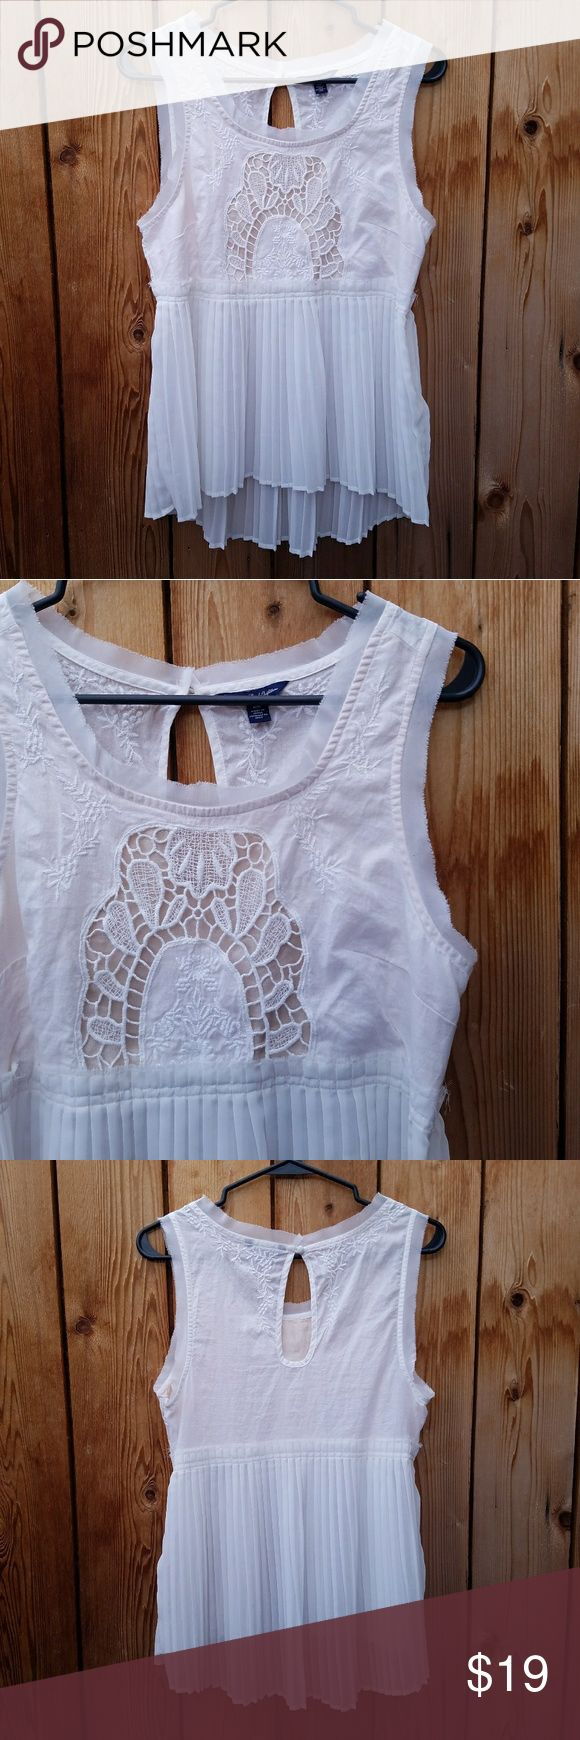 American Eagle White Embroidered Pleated Top Zips along left side, high low, so cute! Excellent condition  Feel free to ask me any additional questions! Bundles 3+ are 15% off. No trades, or modeling. Happy Poshing! American Eagle Outfitters Tops